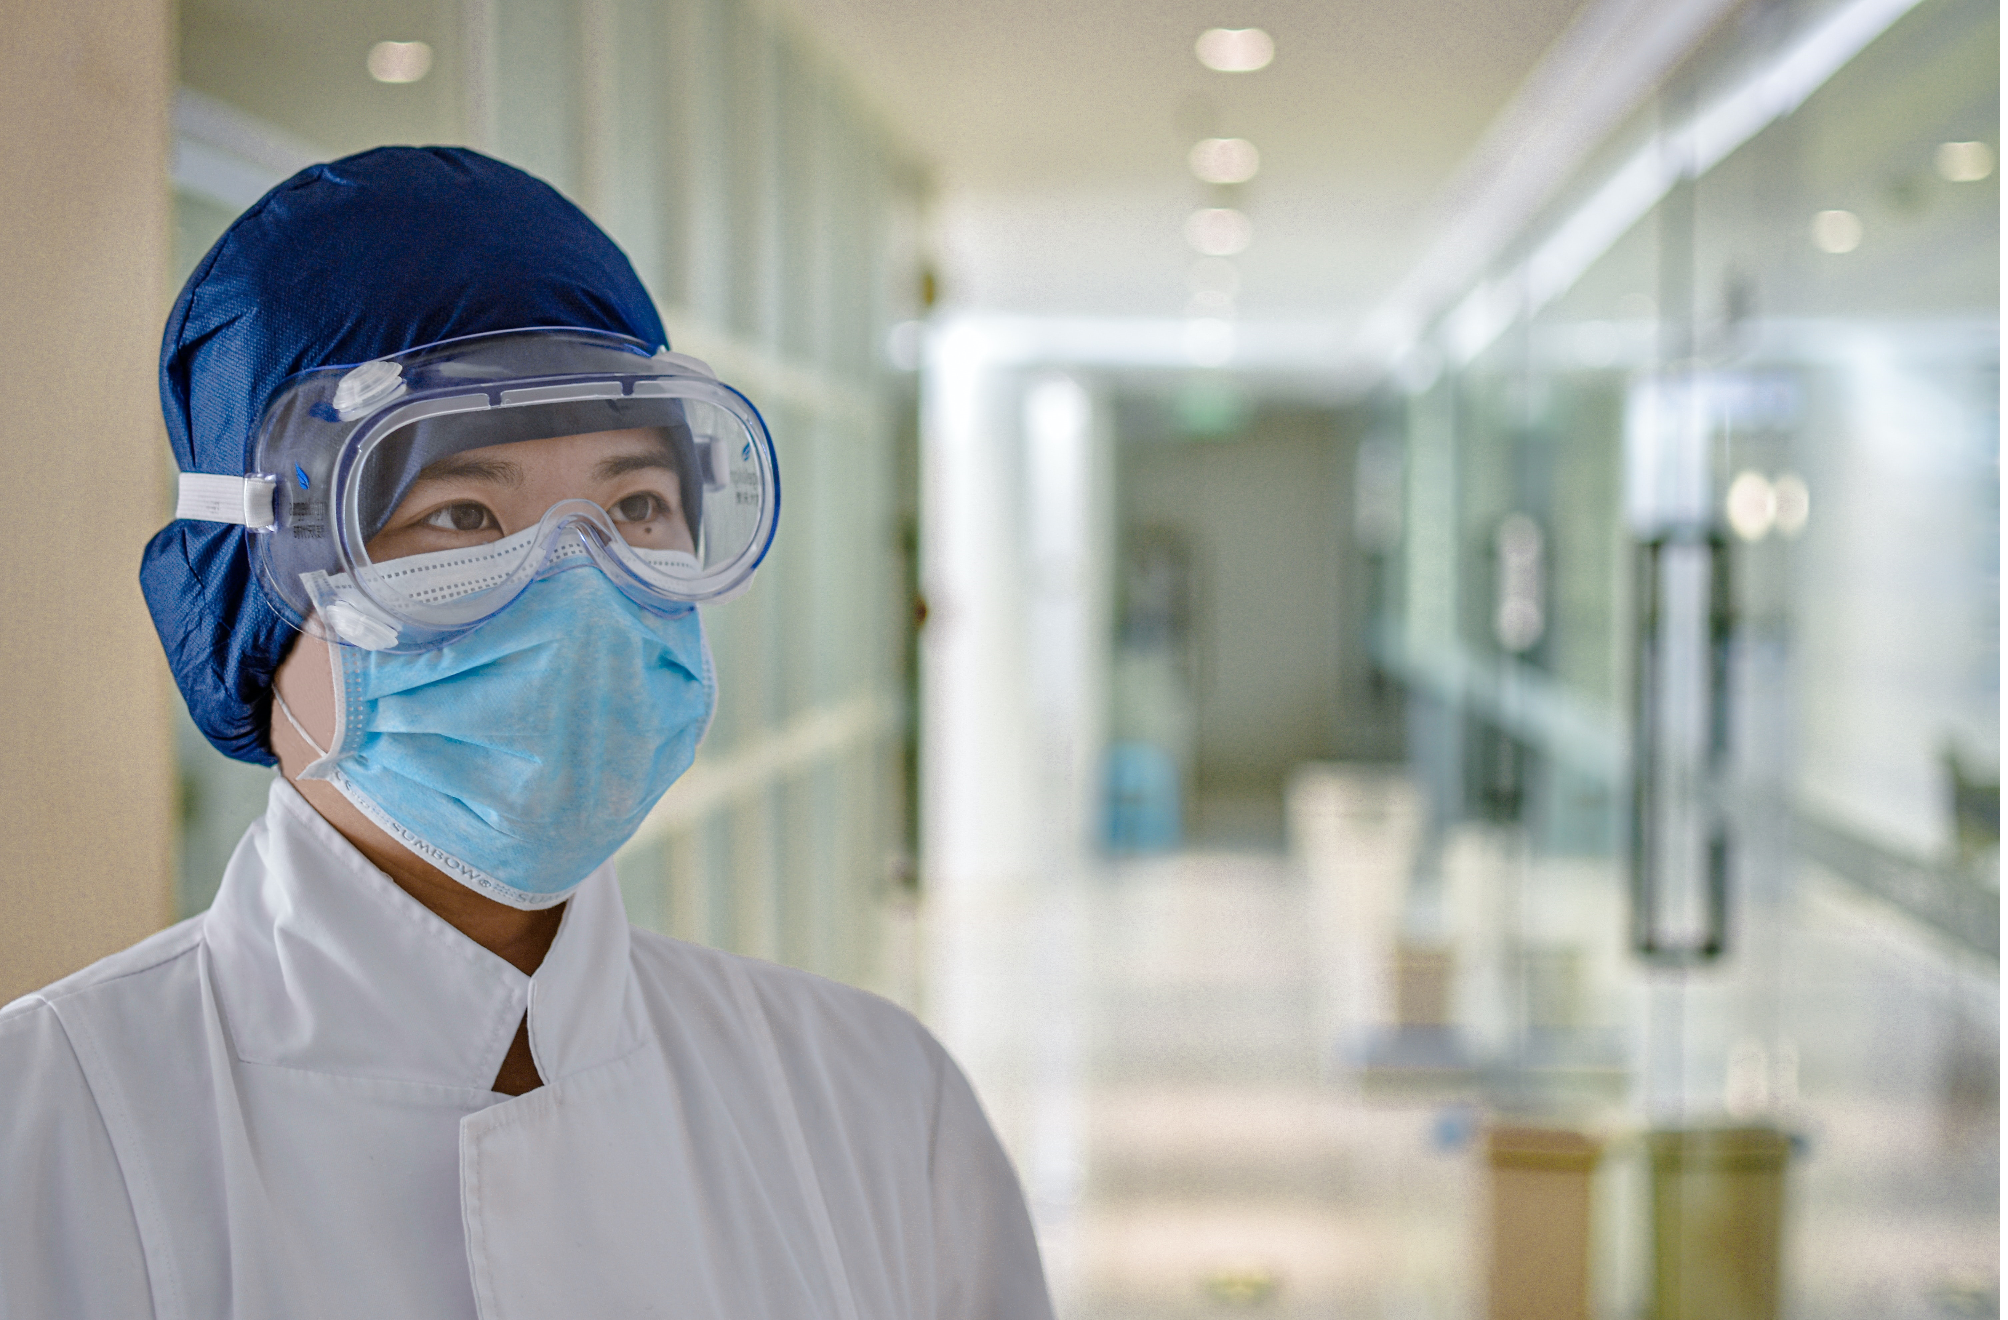 Medical-Grade Personal Protective Equipment Business Bank UK